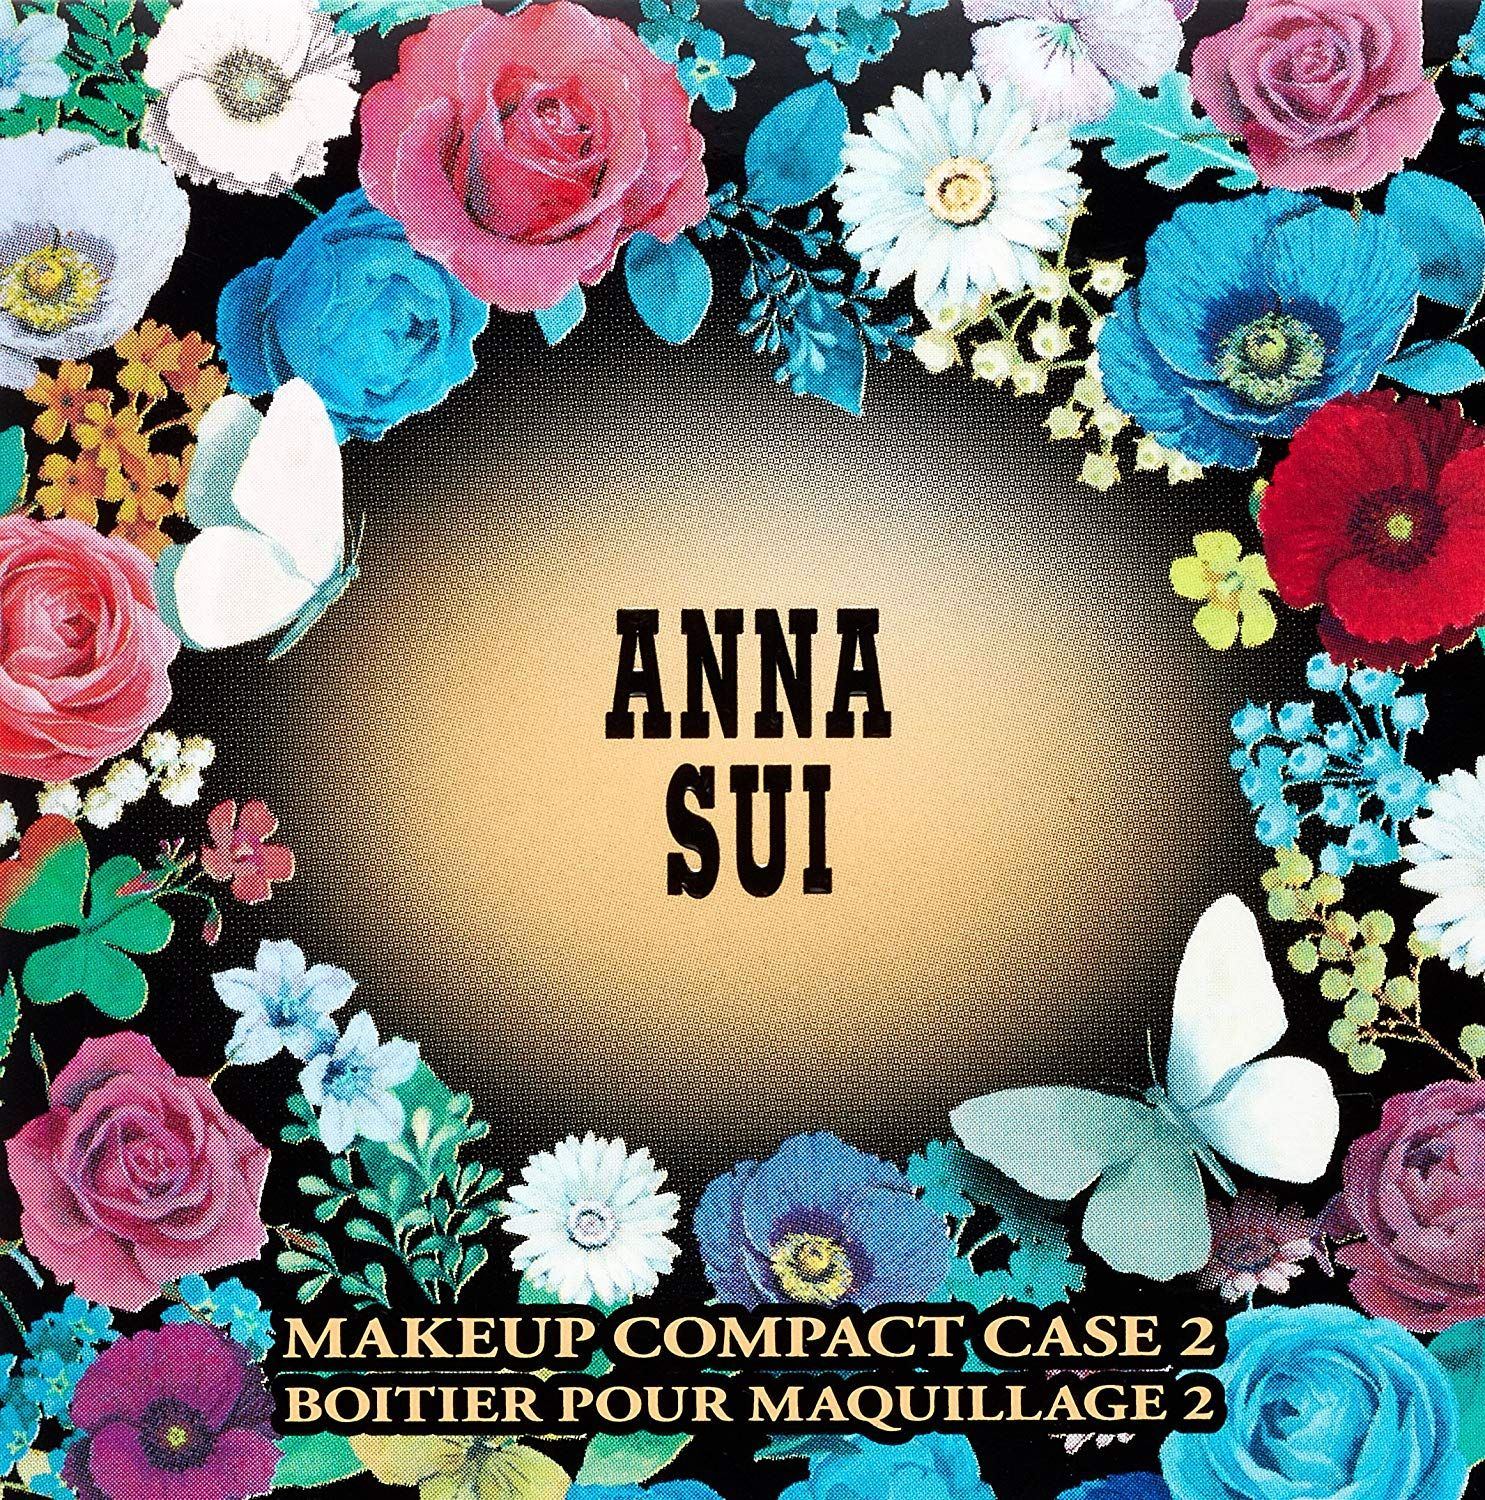 ANNA SUI Makeup Compact Case 2, 48g Amazon.co.uk Luxury